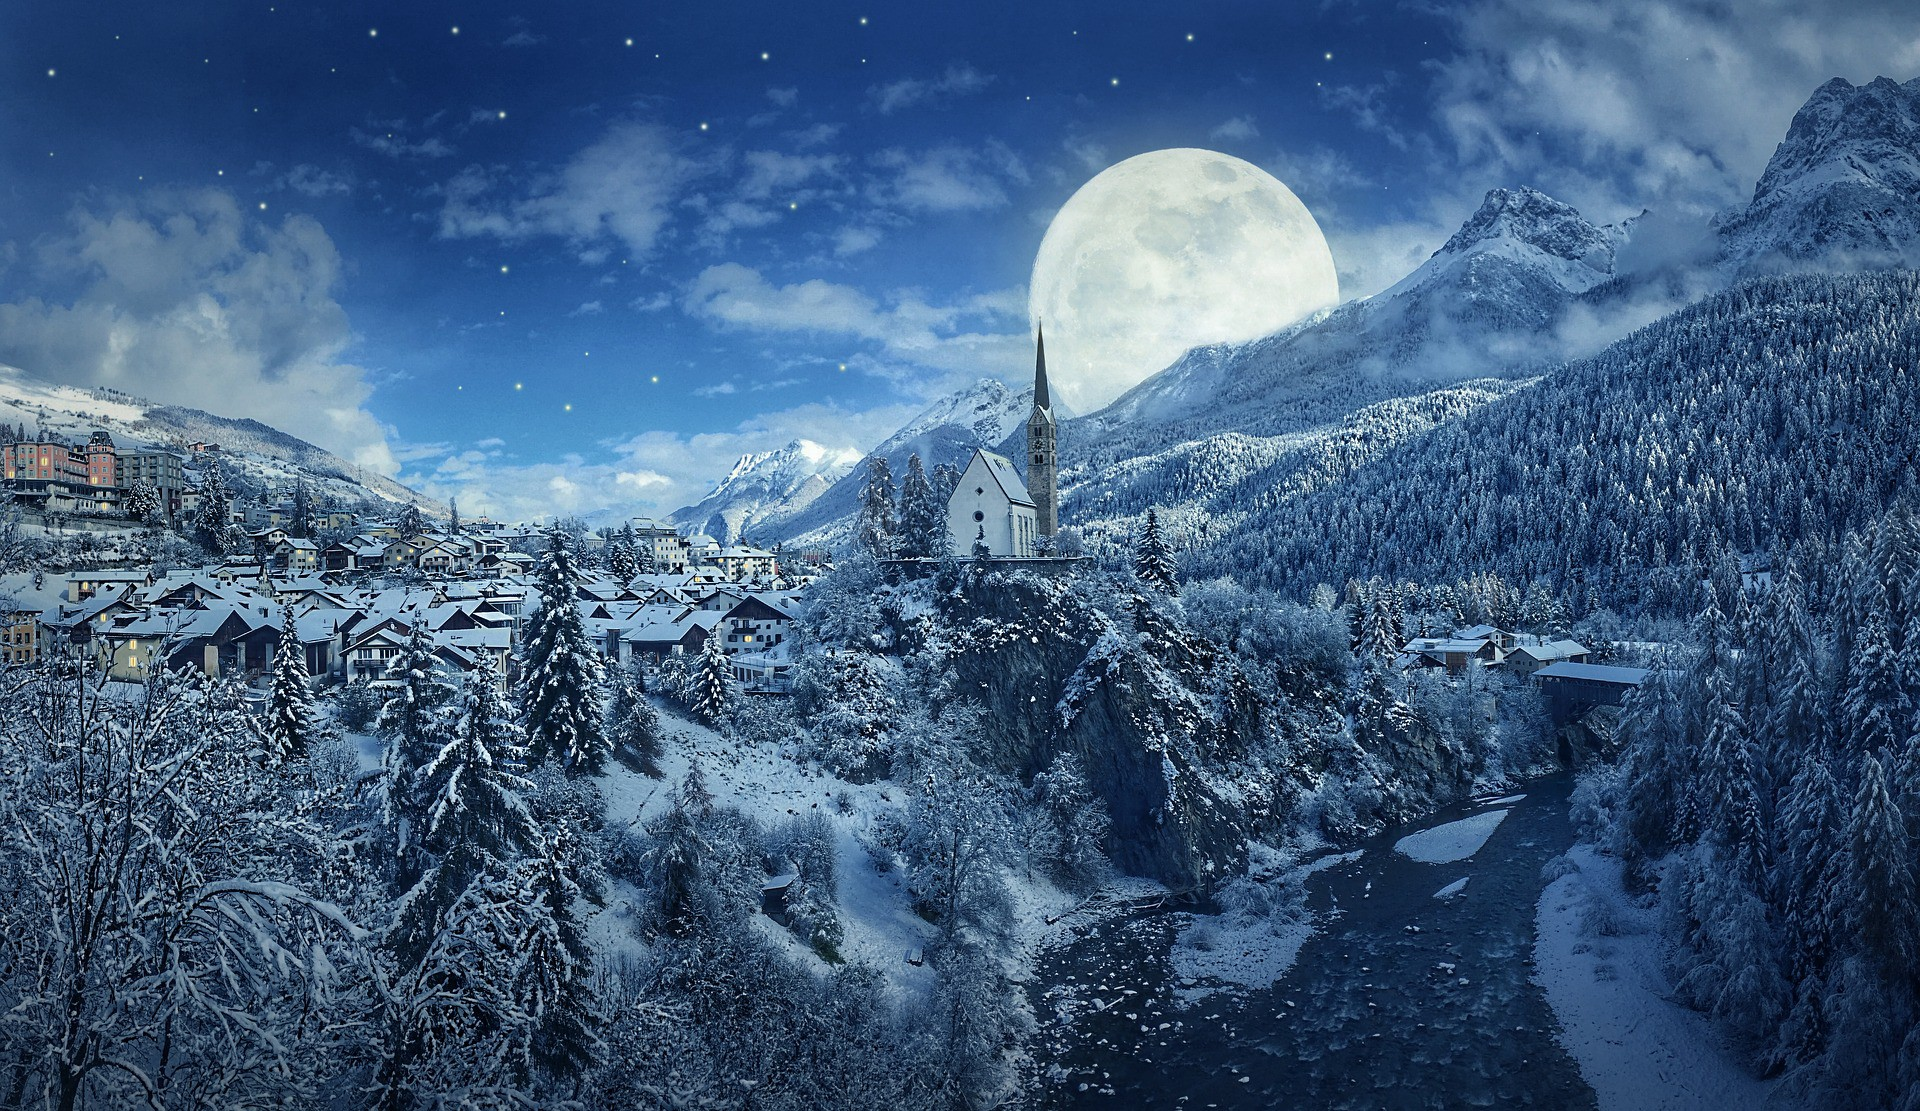 Full Snow Moon rising above white mountains and a village.